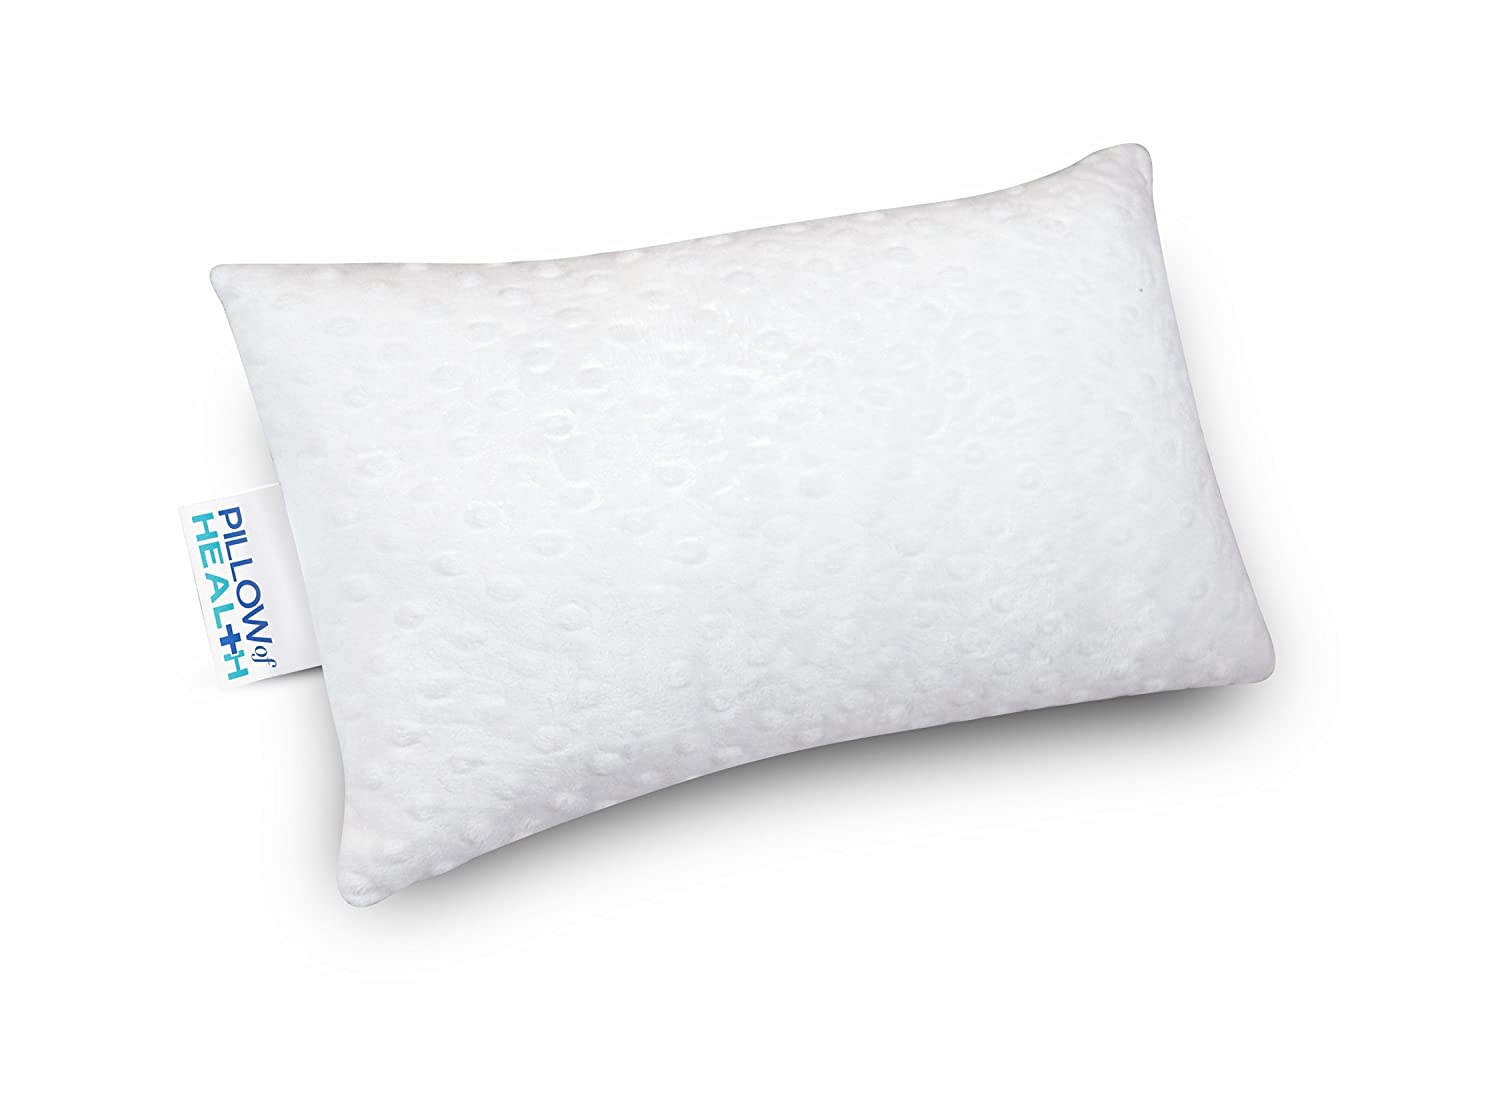 Pillow of Health Lumbar Pillow, 15 x 9 x 4 Inches, Ultrasoft Fleece Cover & Cooling Wickable Bottom, Hypoallergenic, Antimicrobial, Dust Mite Resistant, Certi-Pur Foam & OptiAir Fill The Pillow of Health